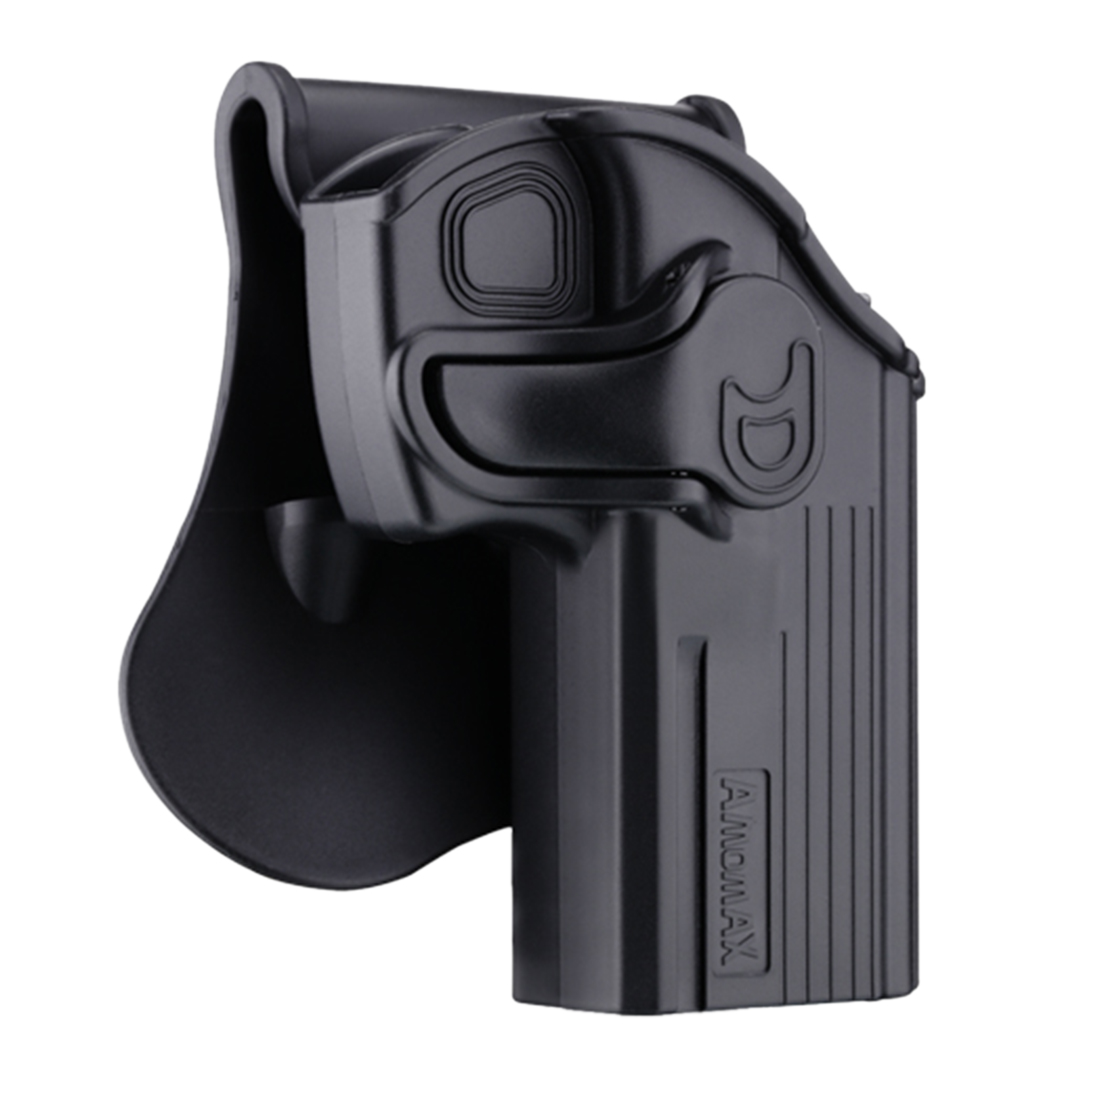 NFSTRIKE Amomax Adjustable Tactical Holster For CZ 75D Compact Taurus 24/7 - Right-Handed Black (Standard Only With Waist Plate)